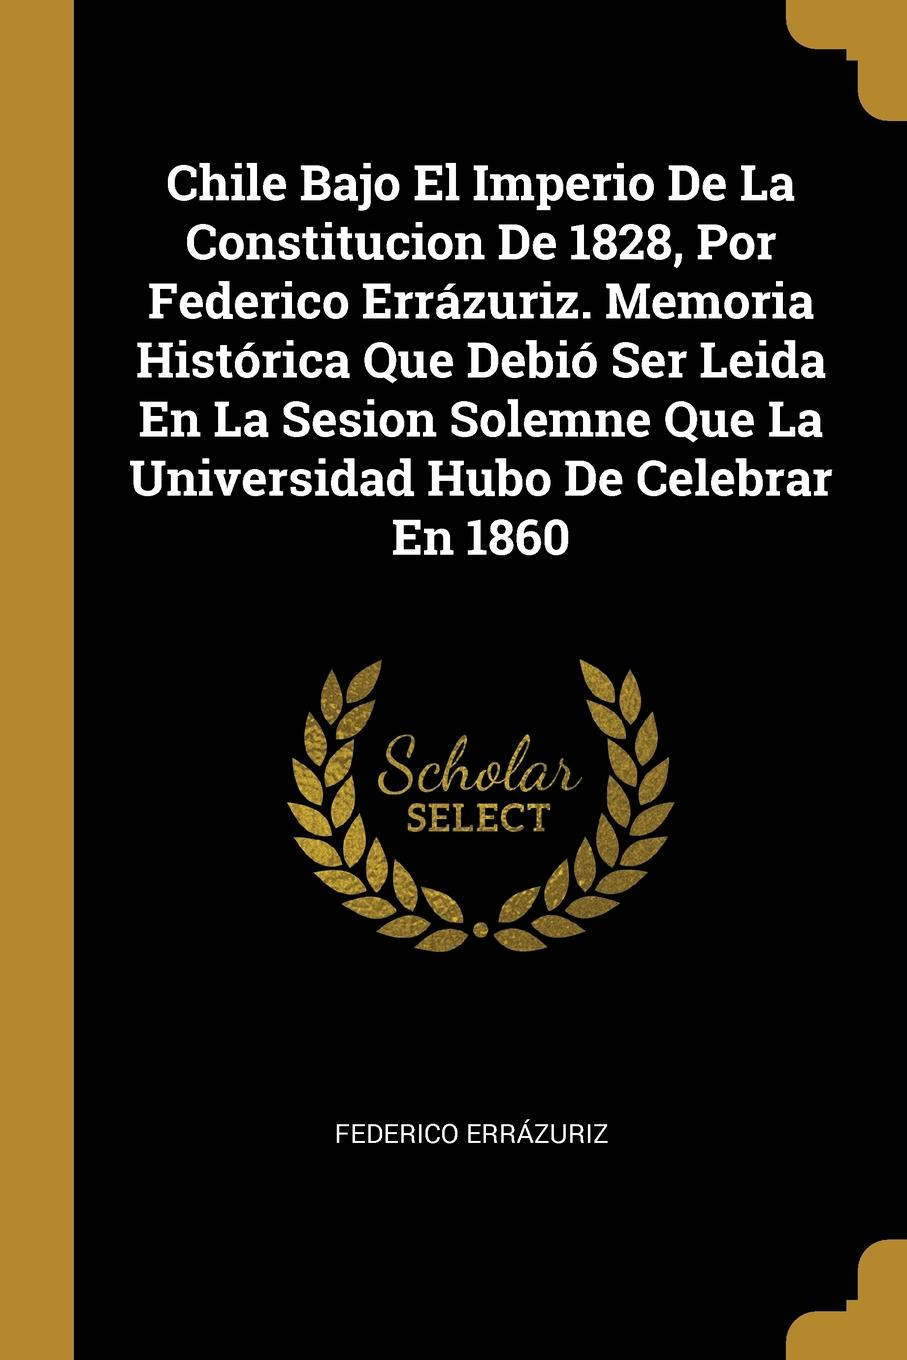 Chile Bajo El Imperio De La Constitucion De 1828, Por Federico Errazuriz. Memoria Historica Que Debio Ser Leida En La Sesion Solemne Que La Universidad Hubo De Celebrar En 1860 This work has been selected by scholars as being culturally...